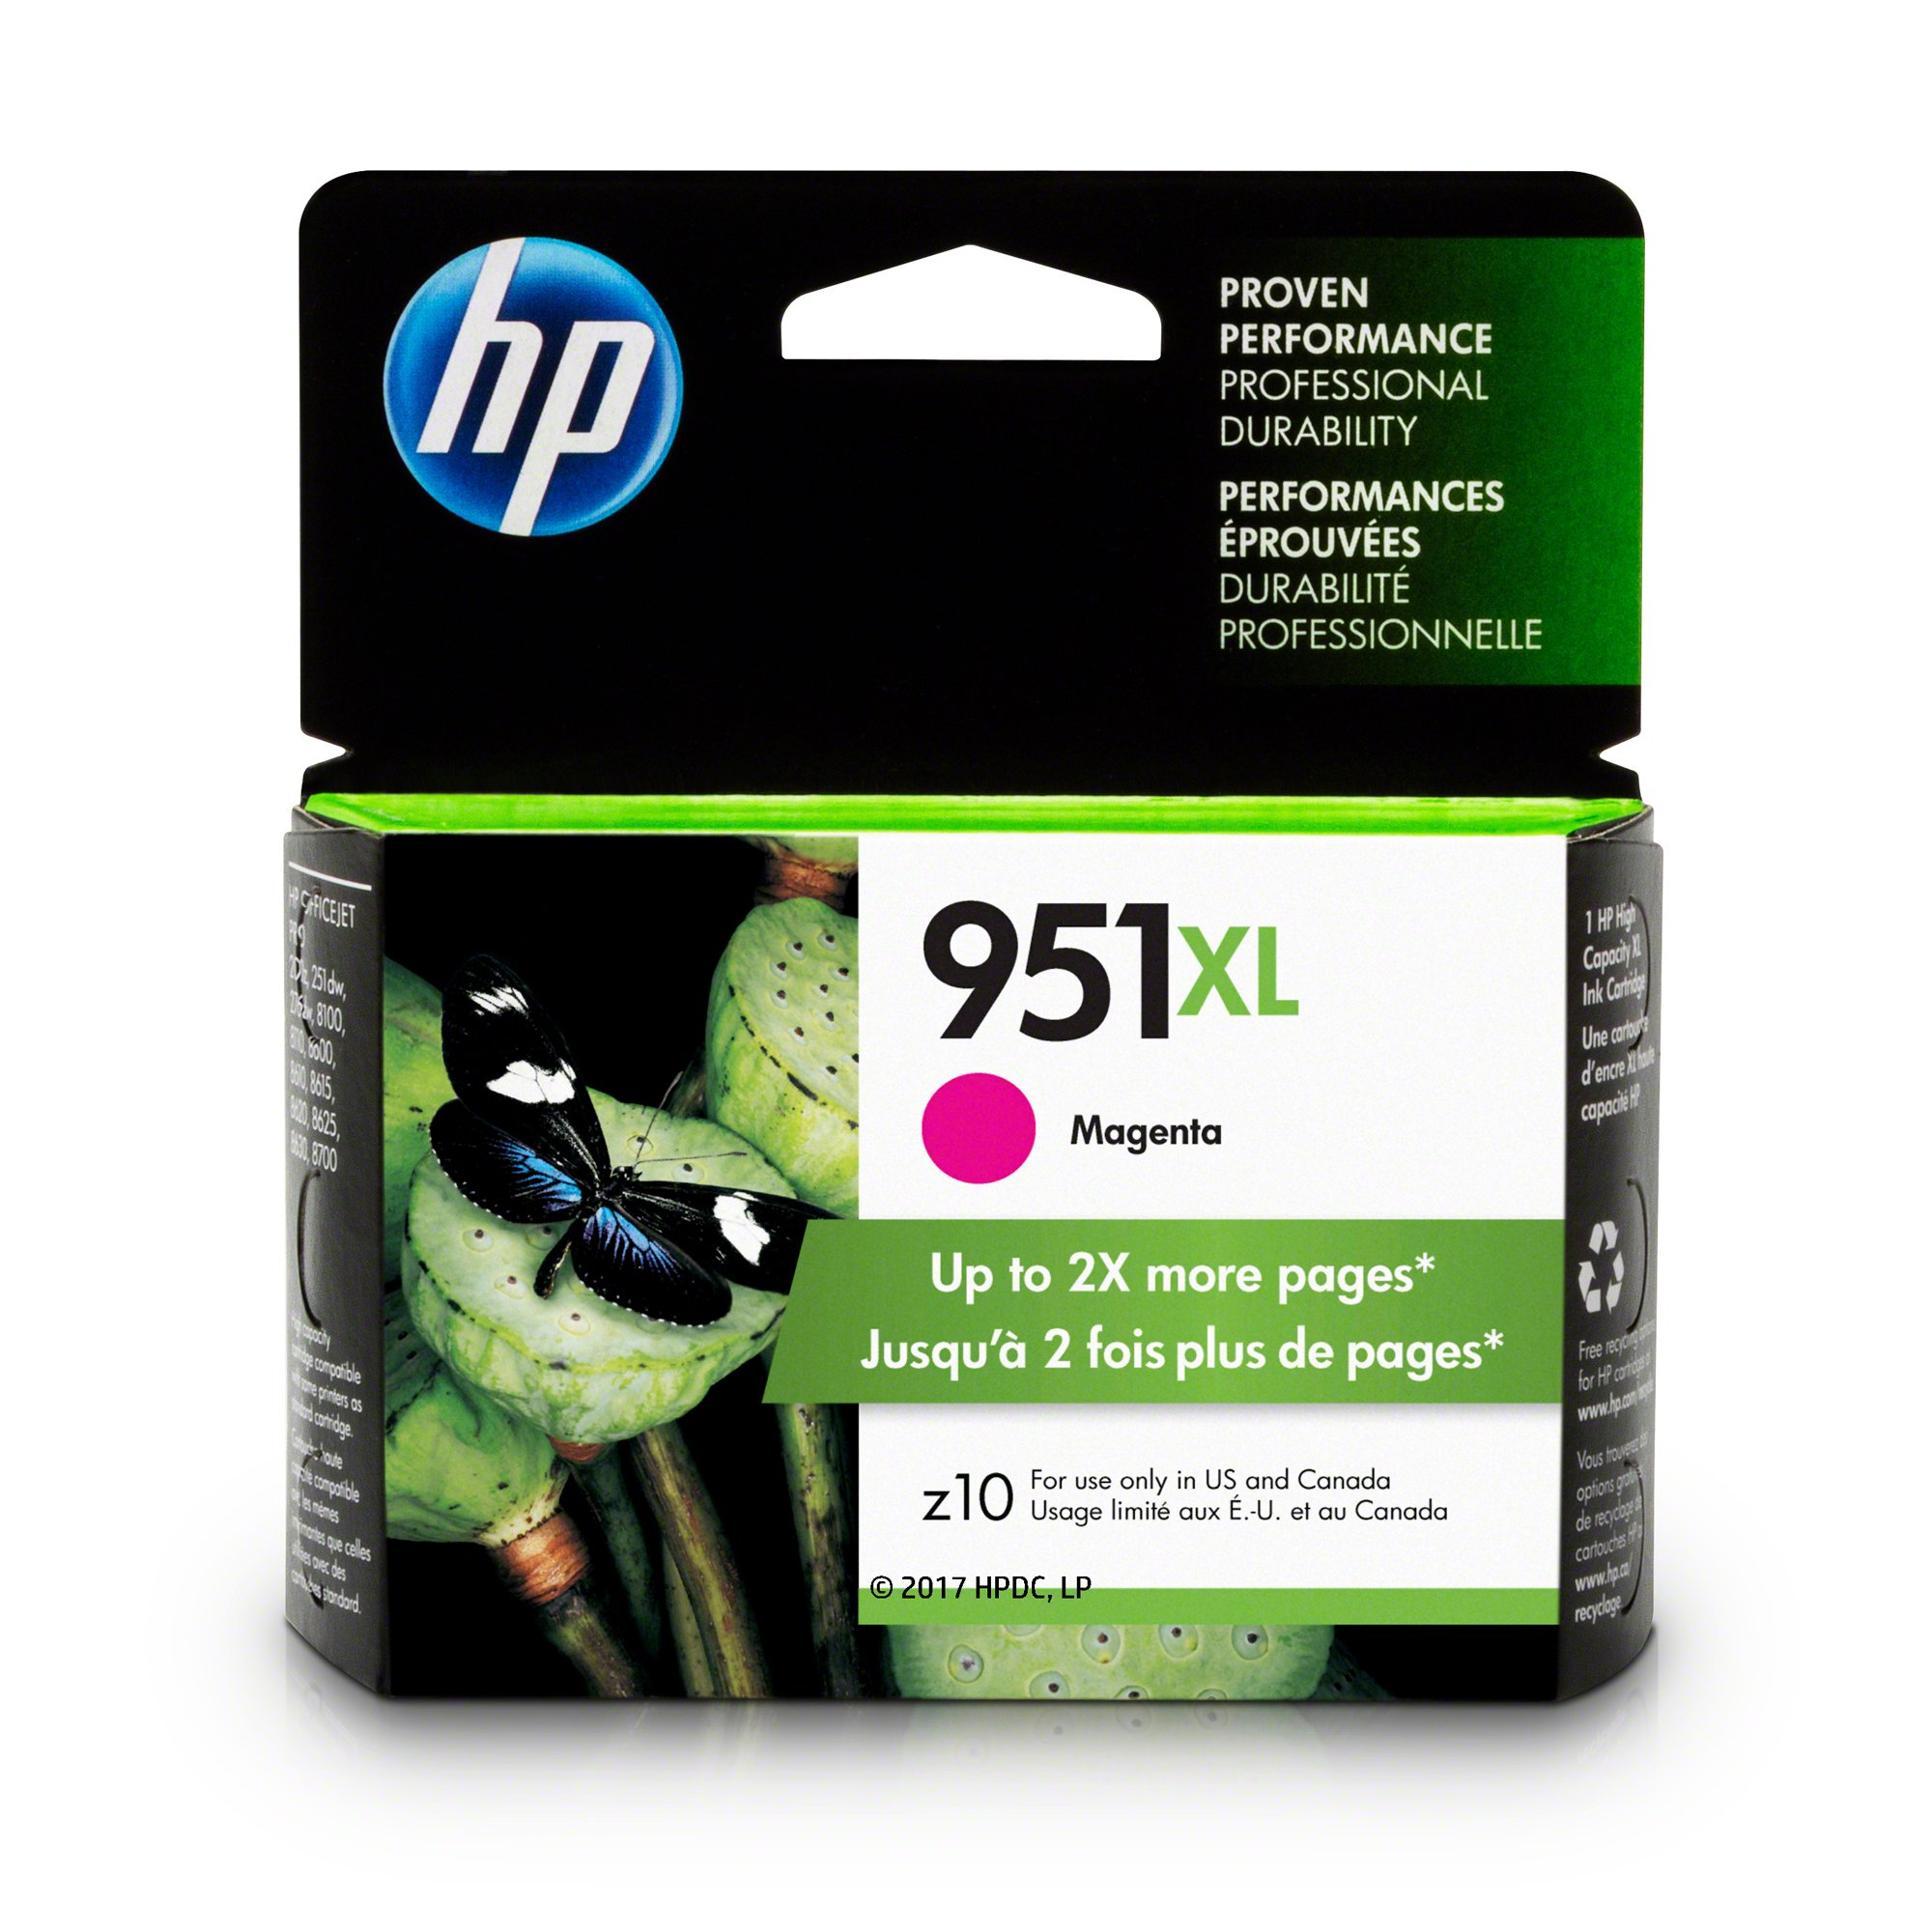 HP CN047AN#140 951XL Ink Cartridge, Magenta High Yield (CN047AN) for Officejet Pro 251, 276, 8100, 8600, 8610, 8620, 8625, 8630